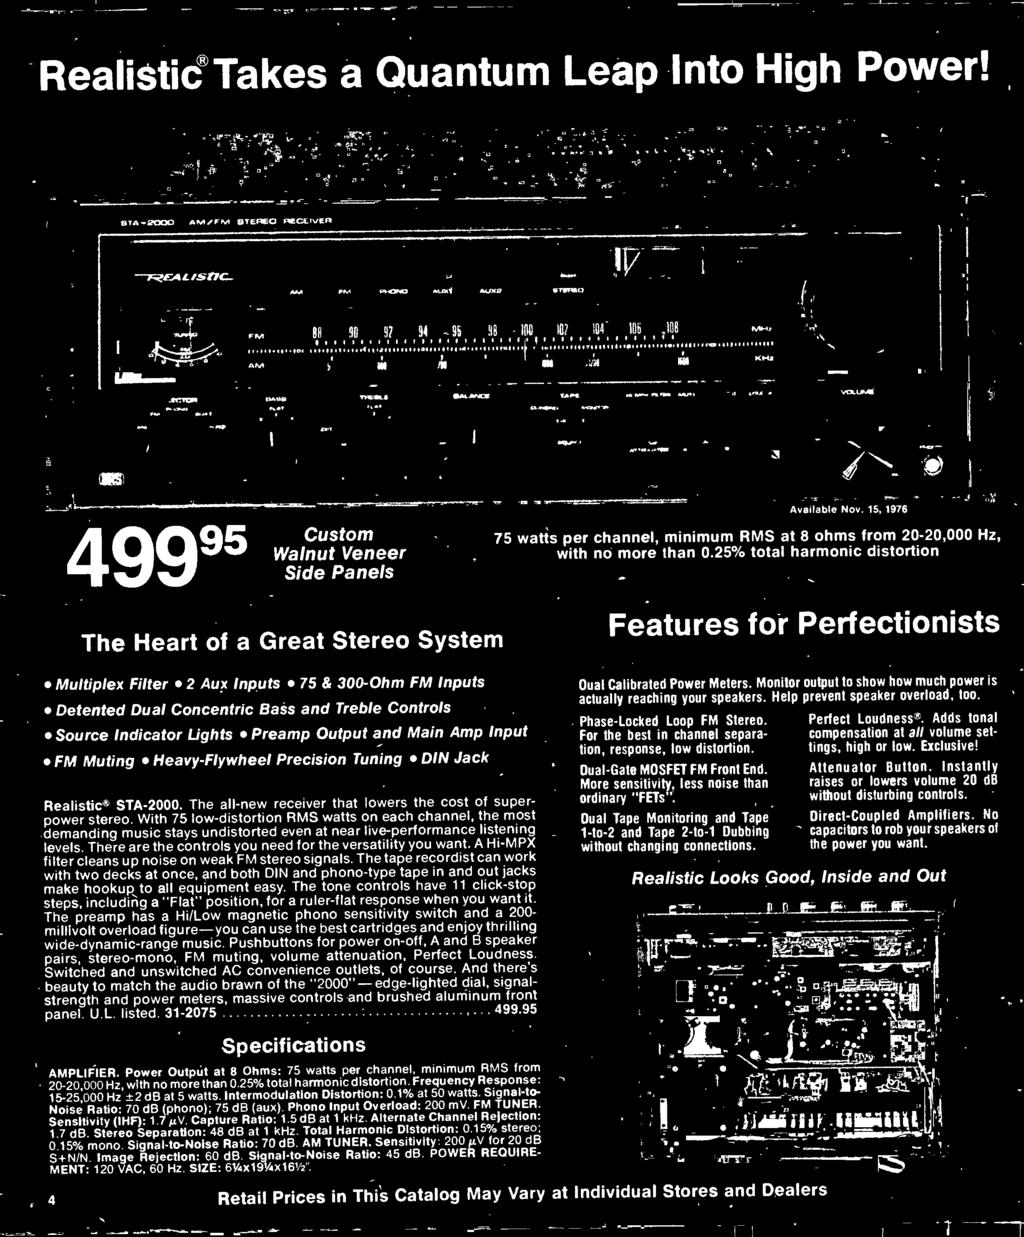 1977 Electronics Catalog Pdf Lm1800 Fm Stereo Demodulator Circuit Diagram There Are The Controls You Need For Versatility Want A Hi Mpx